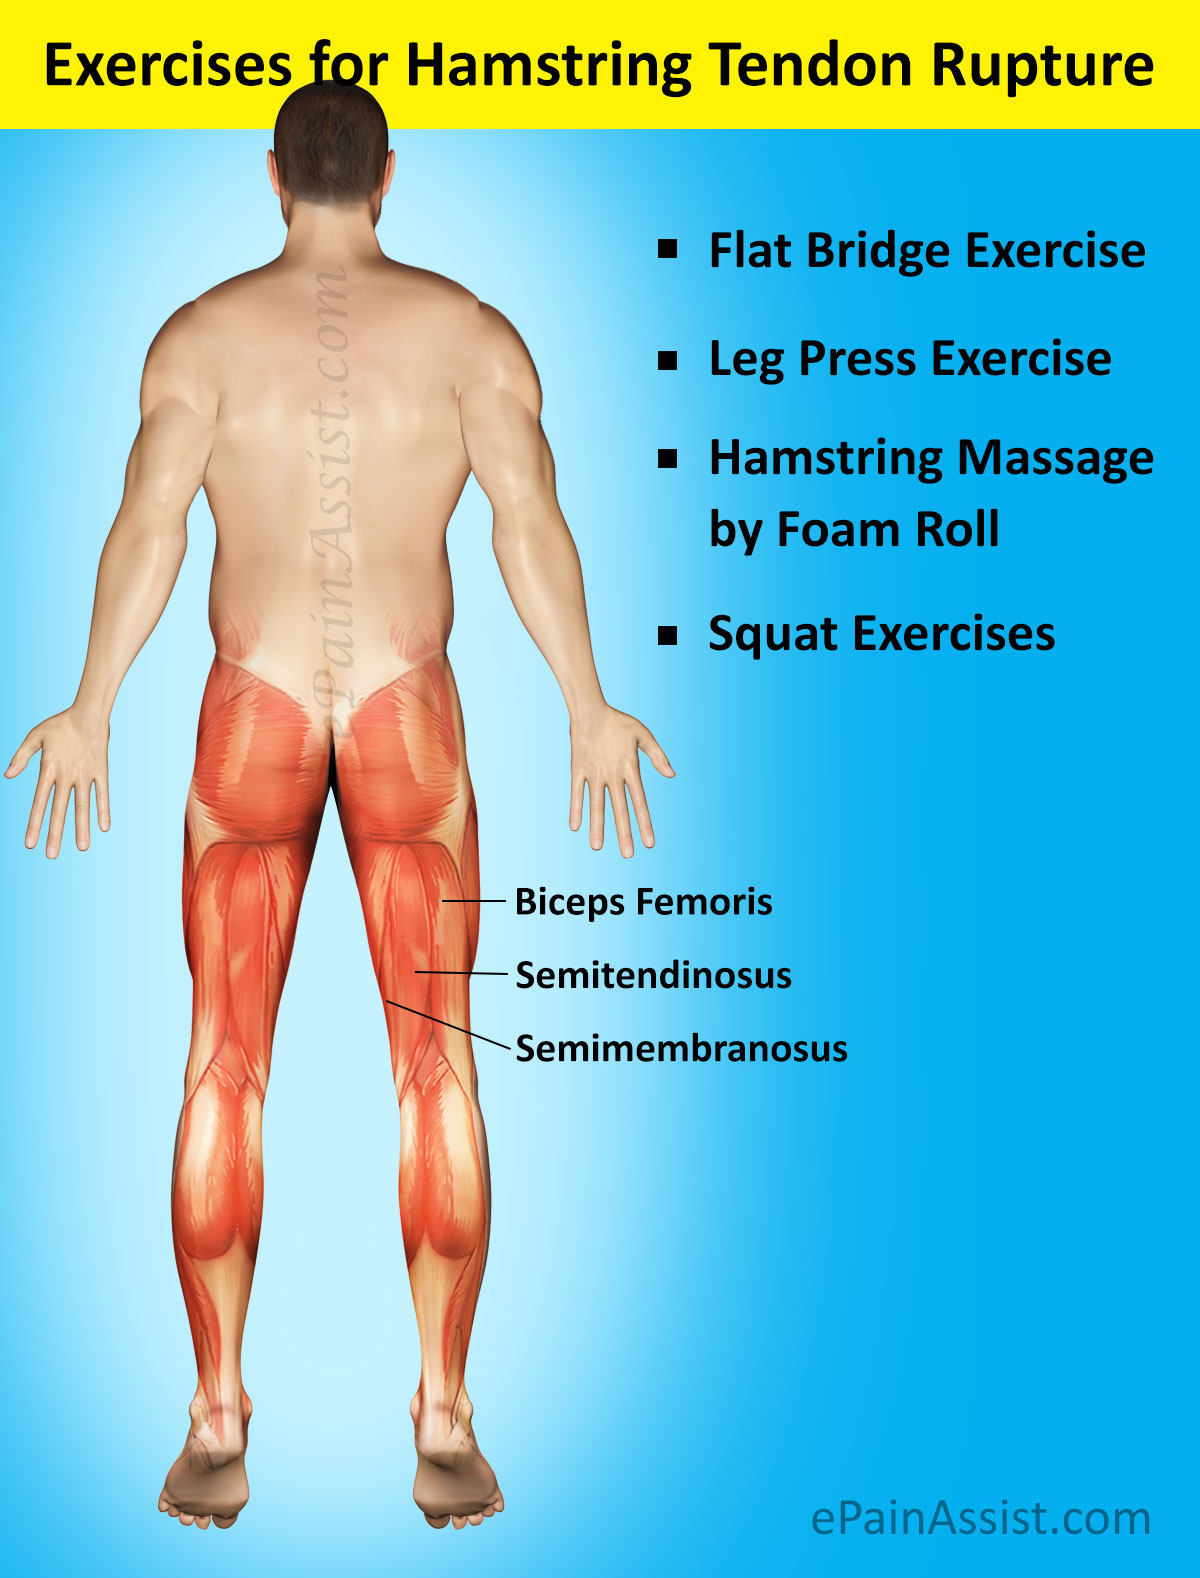 Exercises for Hamstring Tendon Rupture